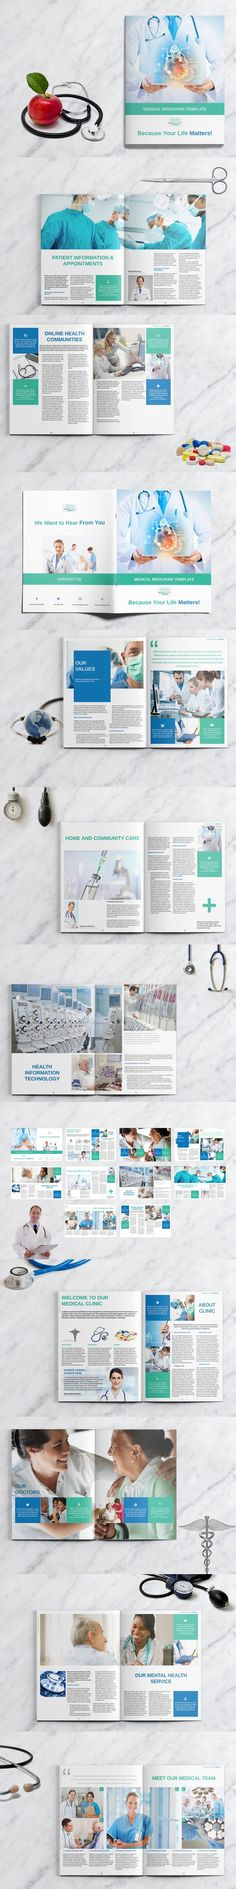 Modern Medical Brochure Medical brochure, Brochures and Medical - medical brochure template